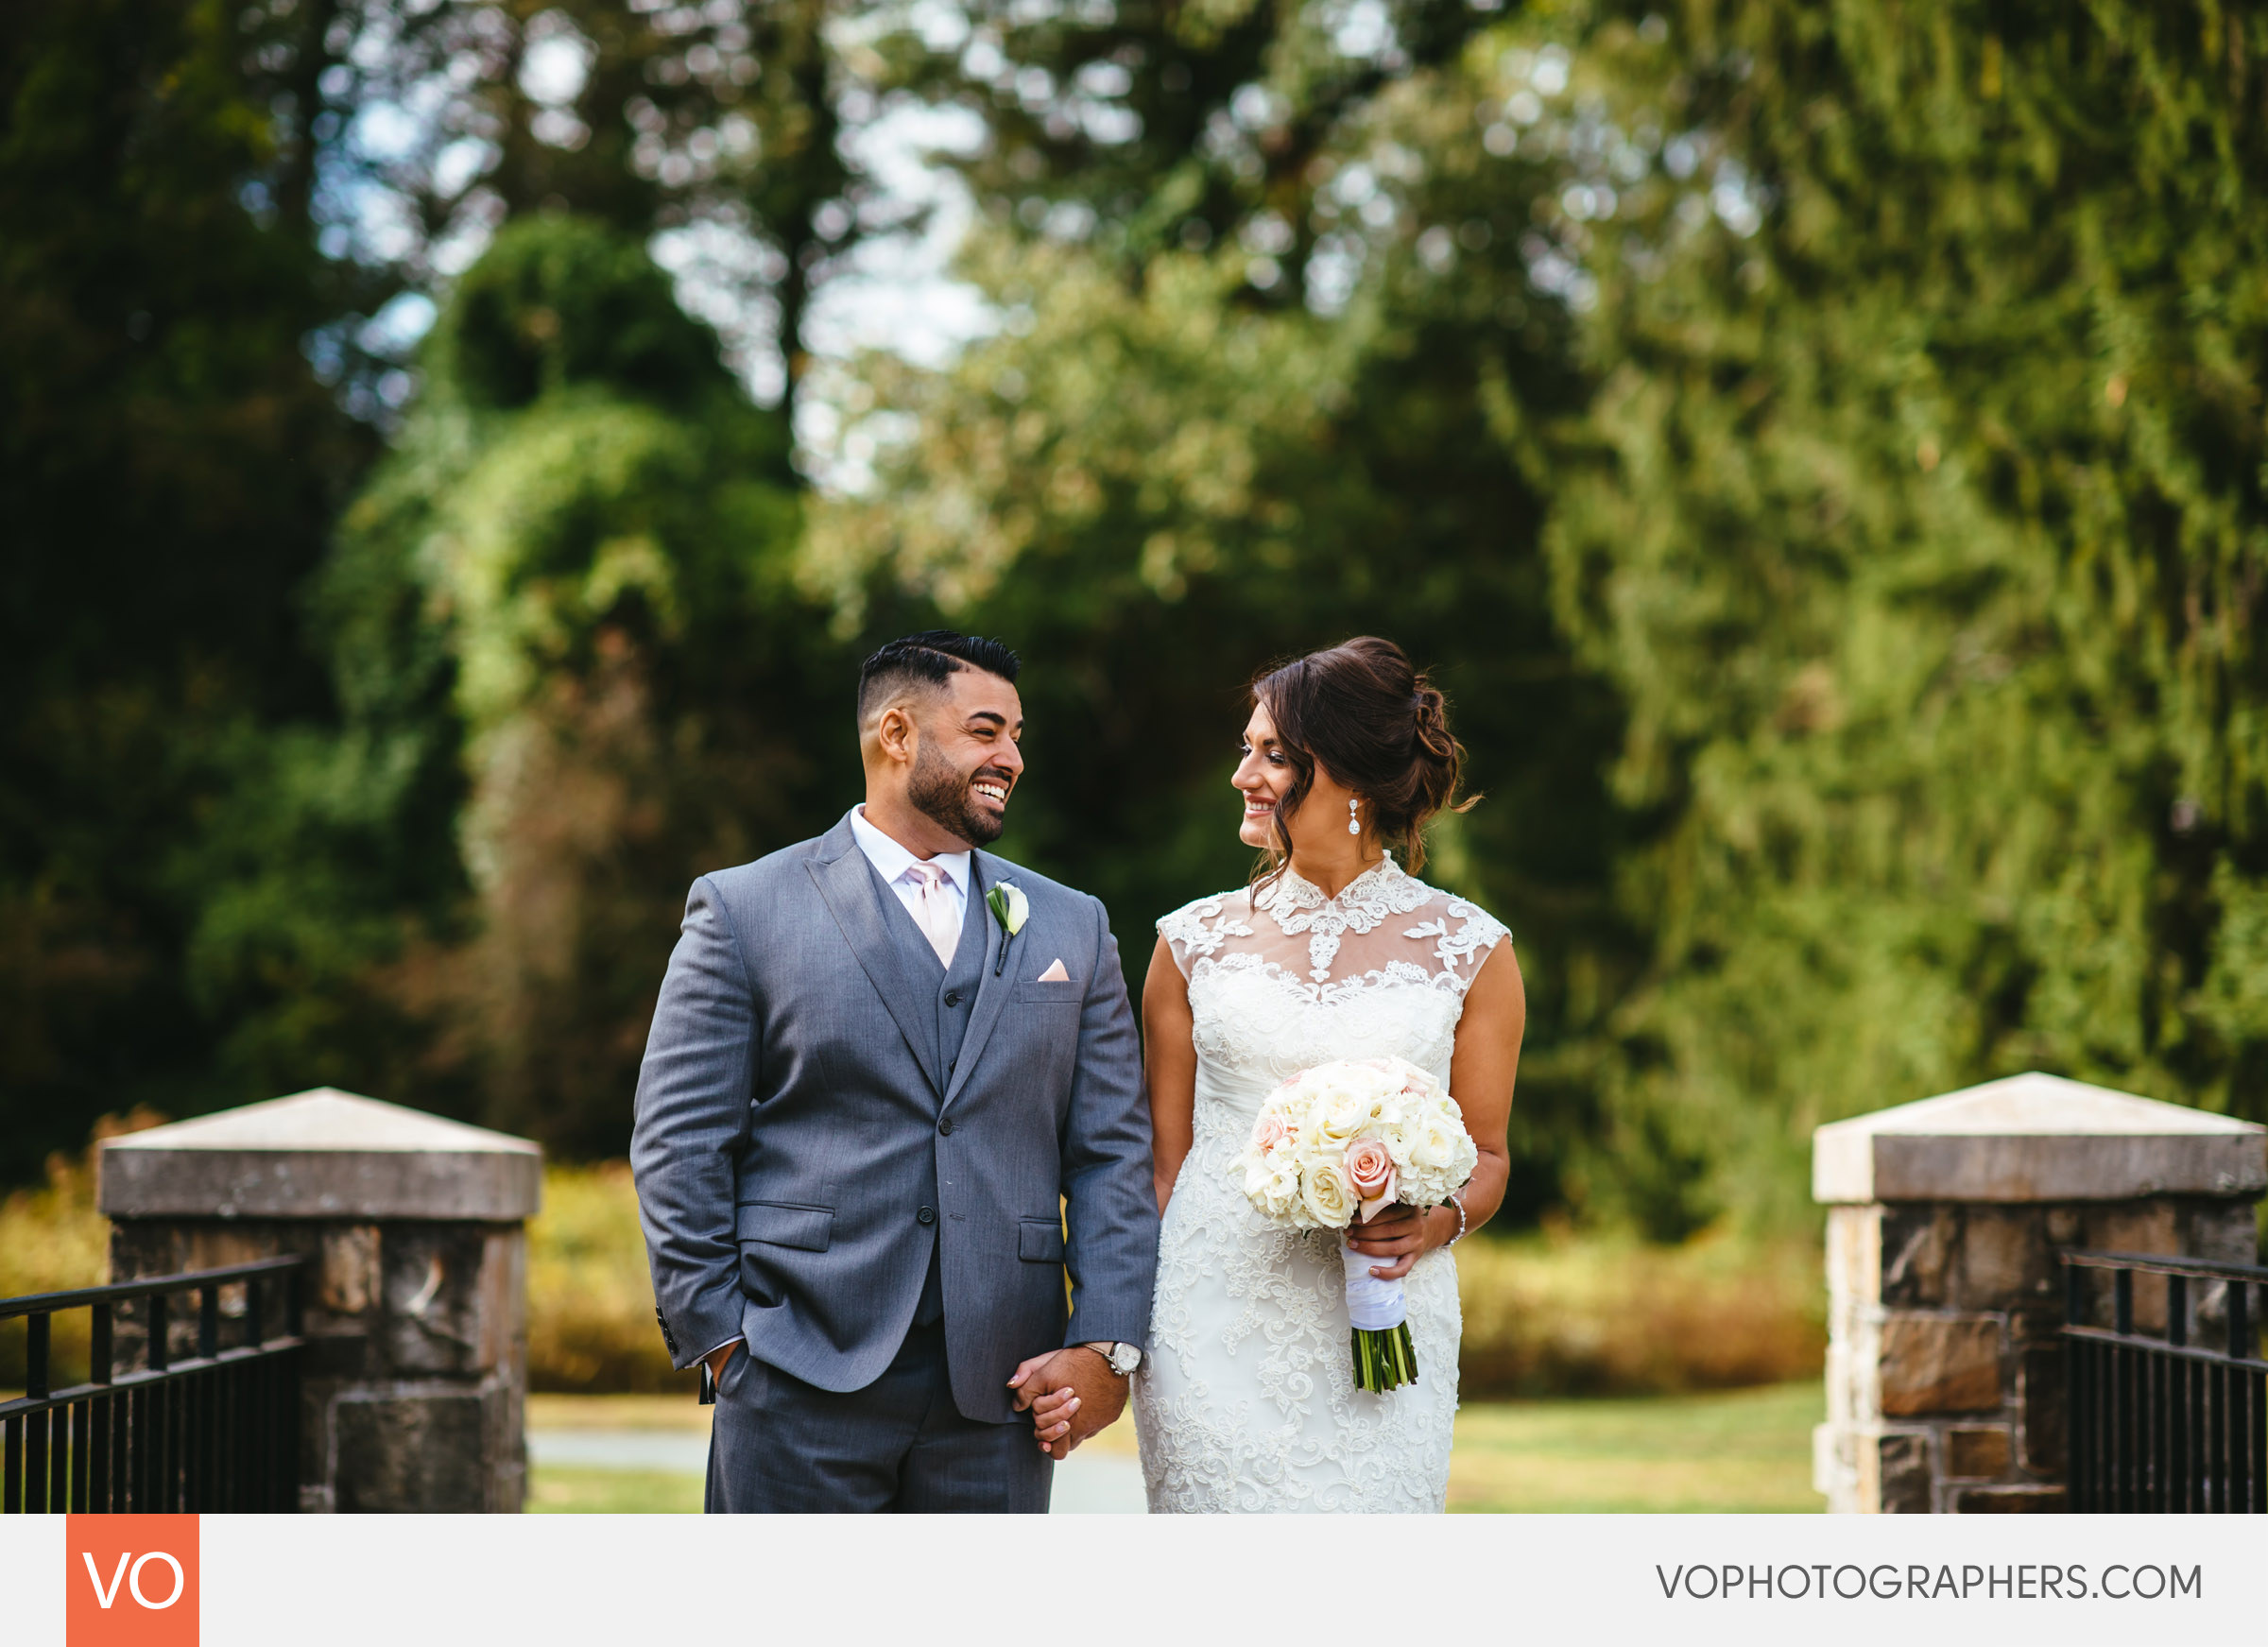 Oriana-Barem-Lakeview-Pavilion-Wedding-0018